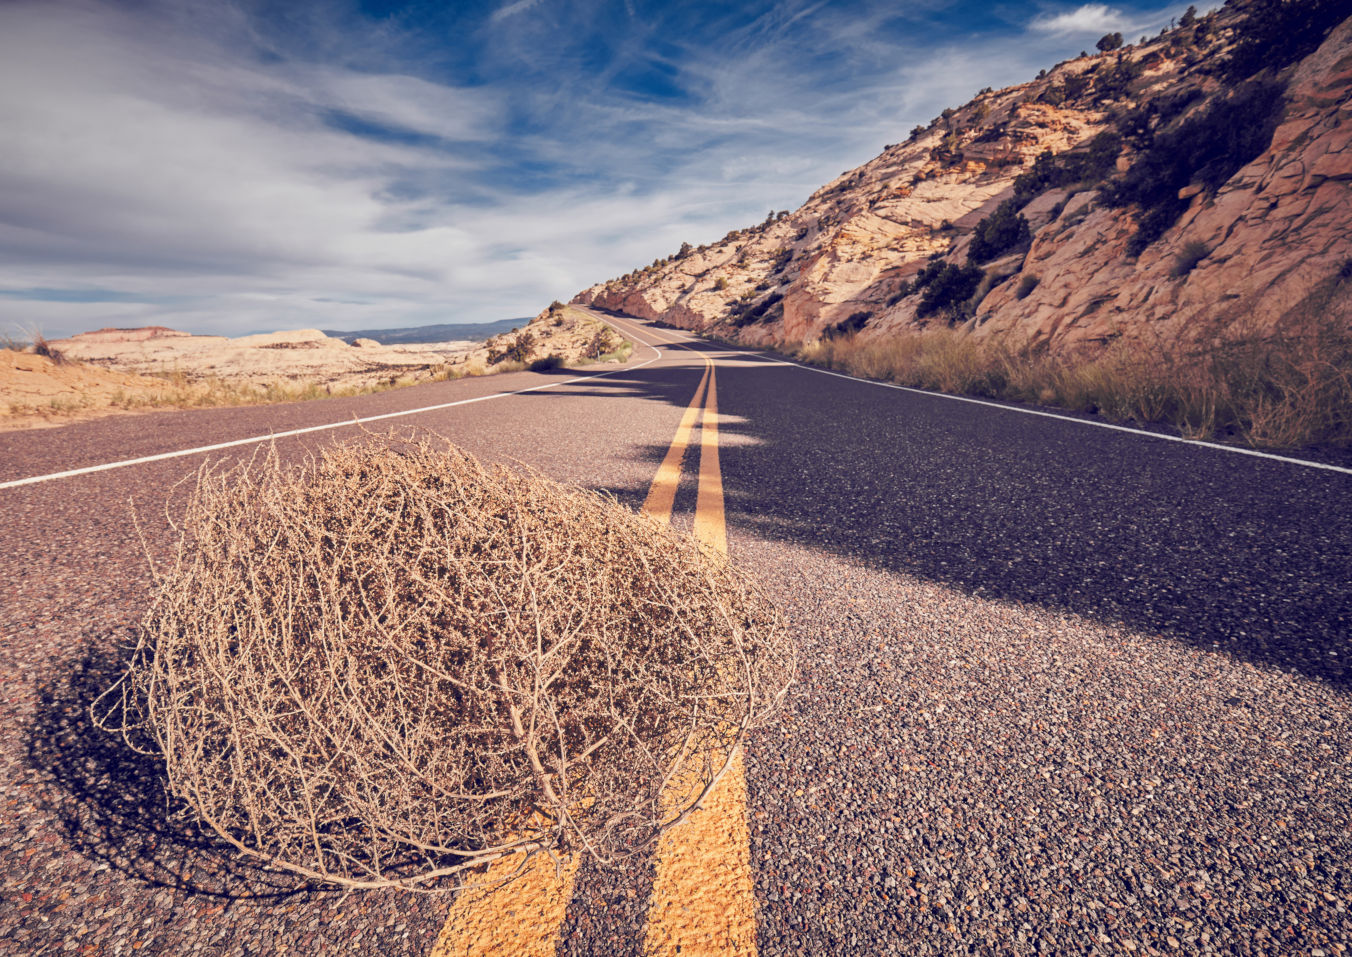 Tumbleweed on a road